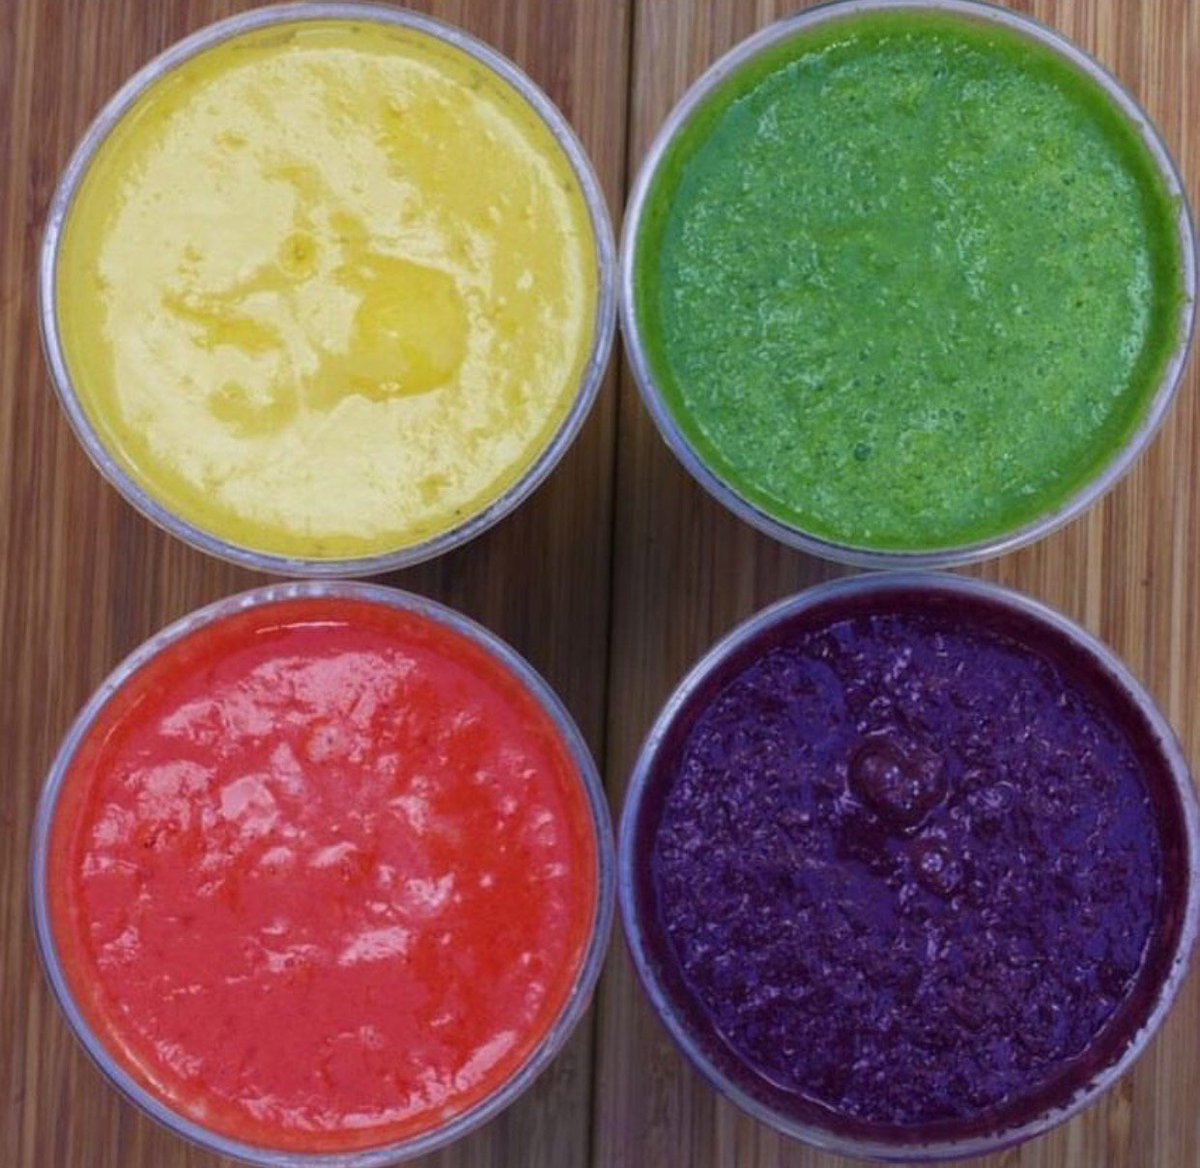 Why not try a wellness boost in your smoothie today? We have Chia Seeds, Wheatgrass, Açai Berry, Whey Protein &amp; Vitamin C #wellness #juiced<br>http://pic.twitter.com/kczqHSF8vK